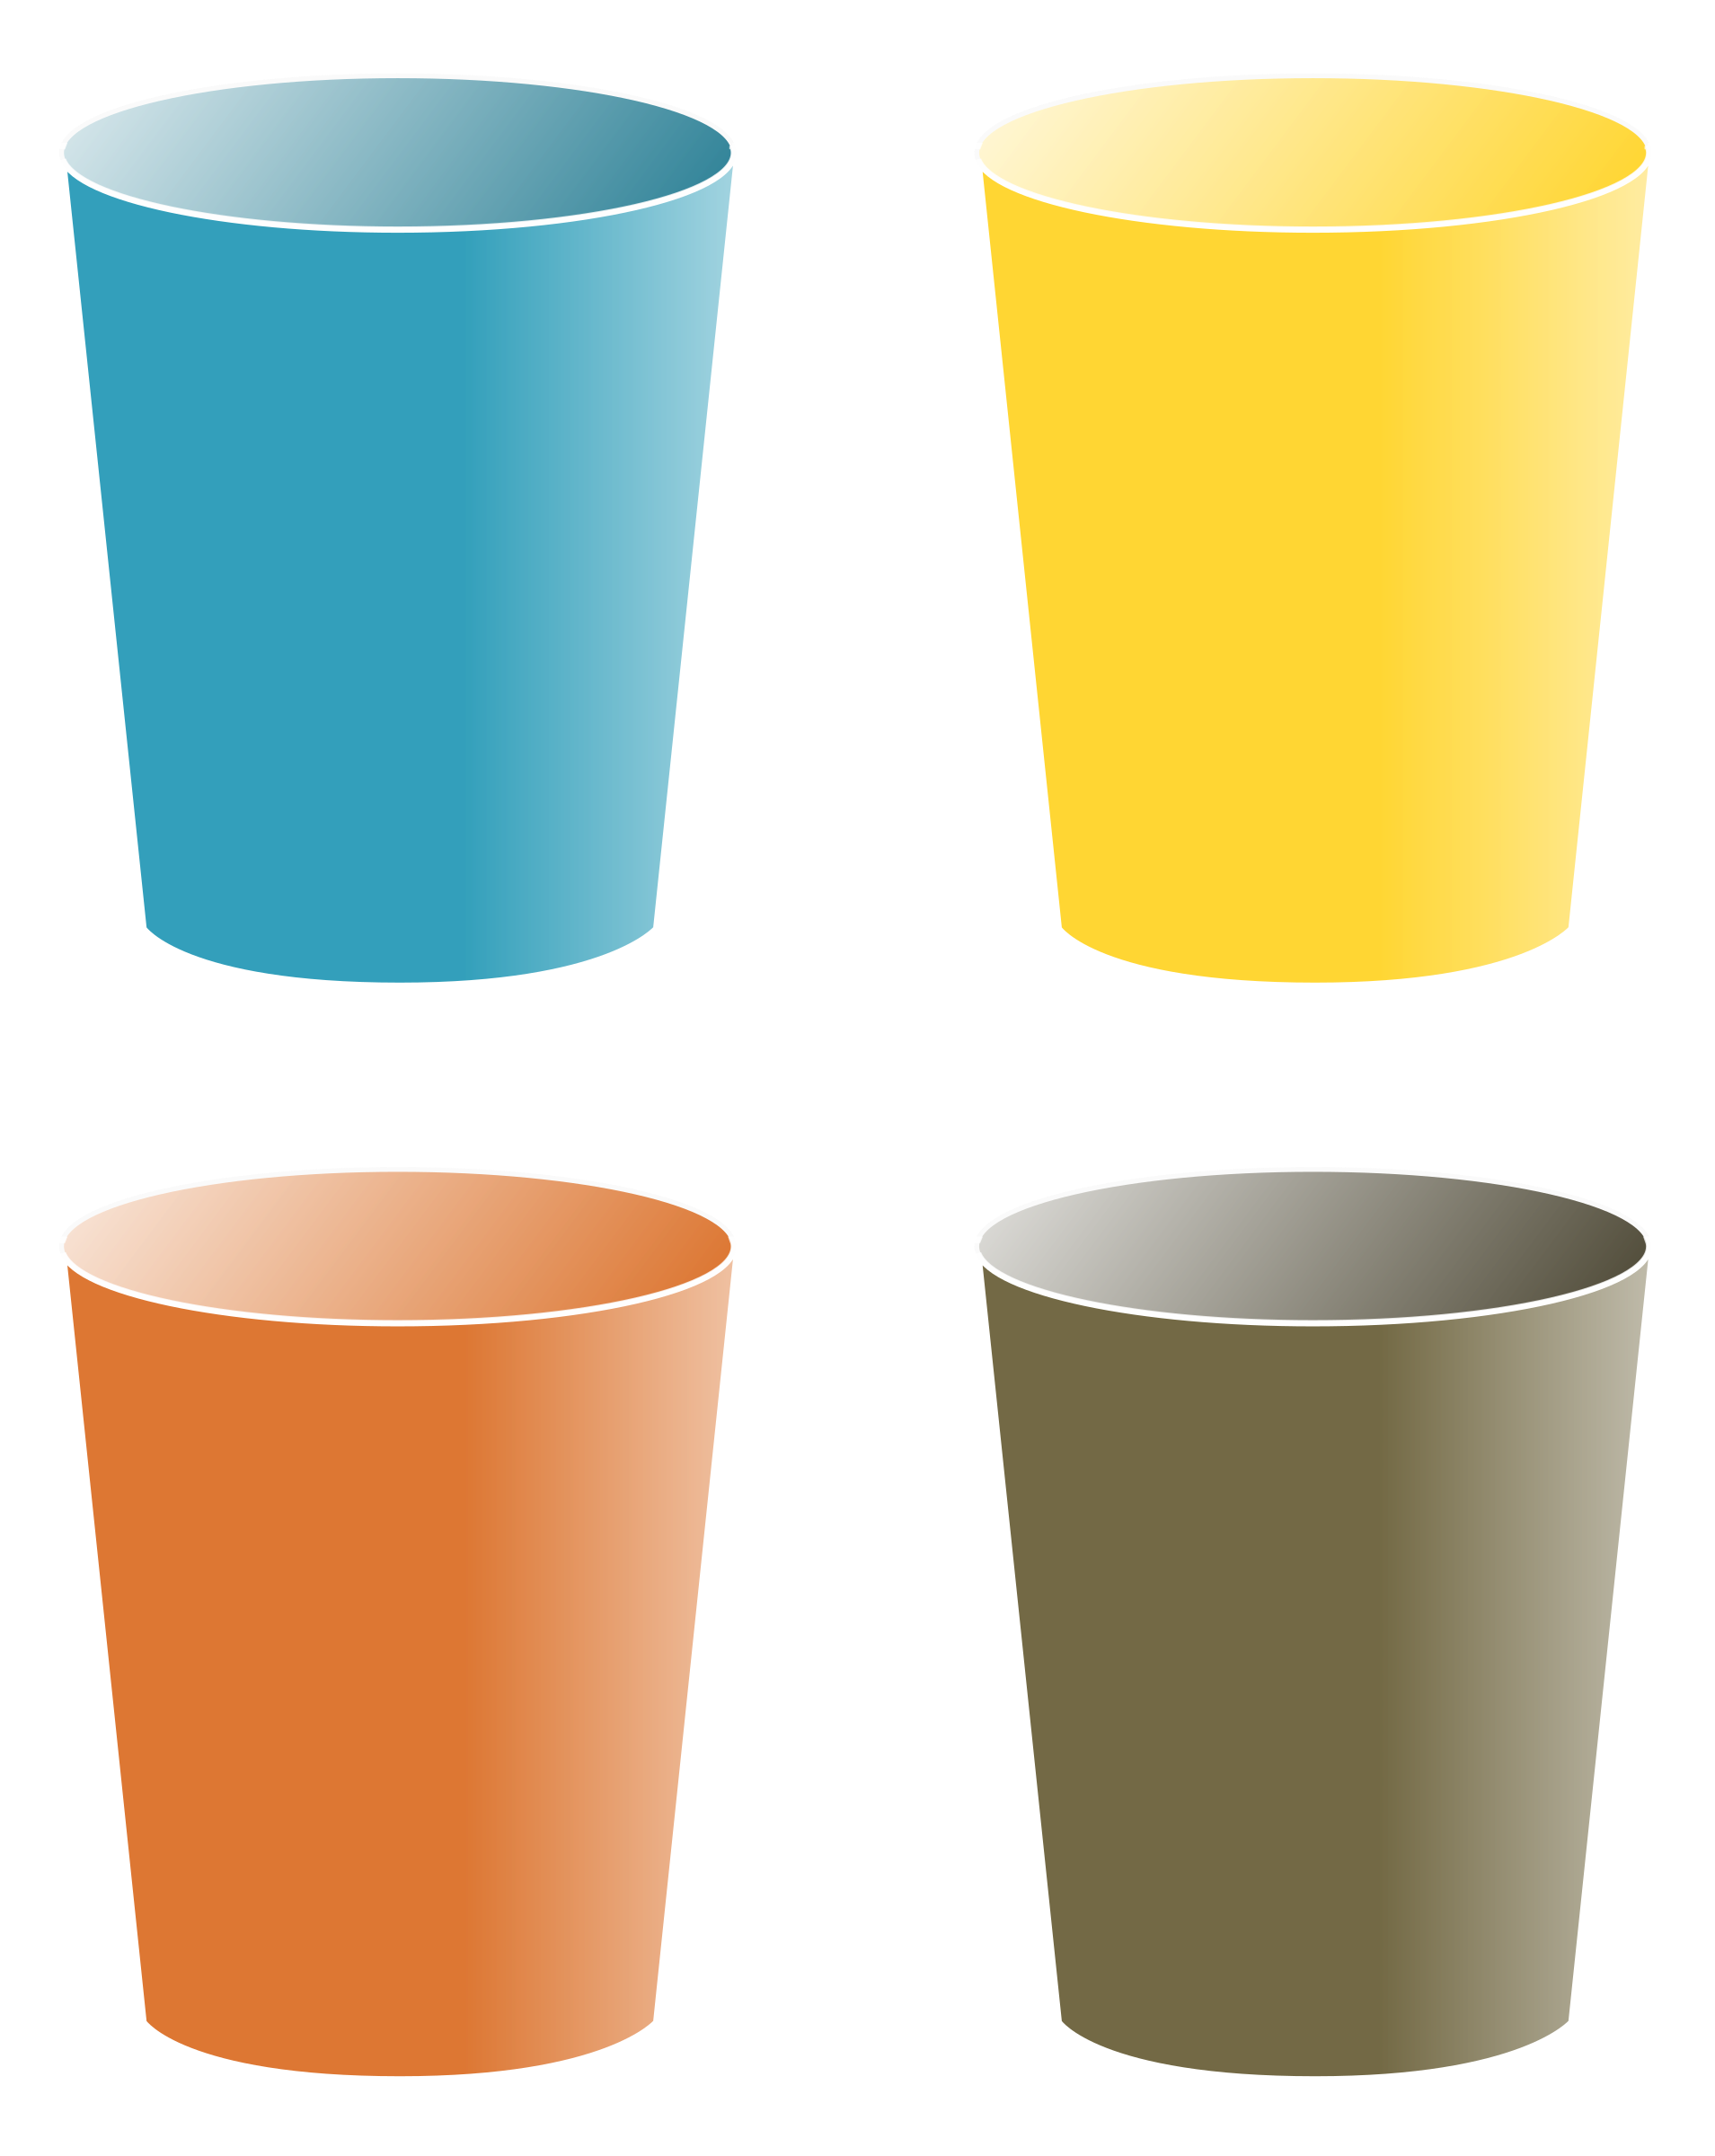 Cups by i-art